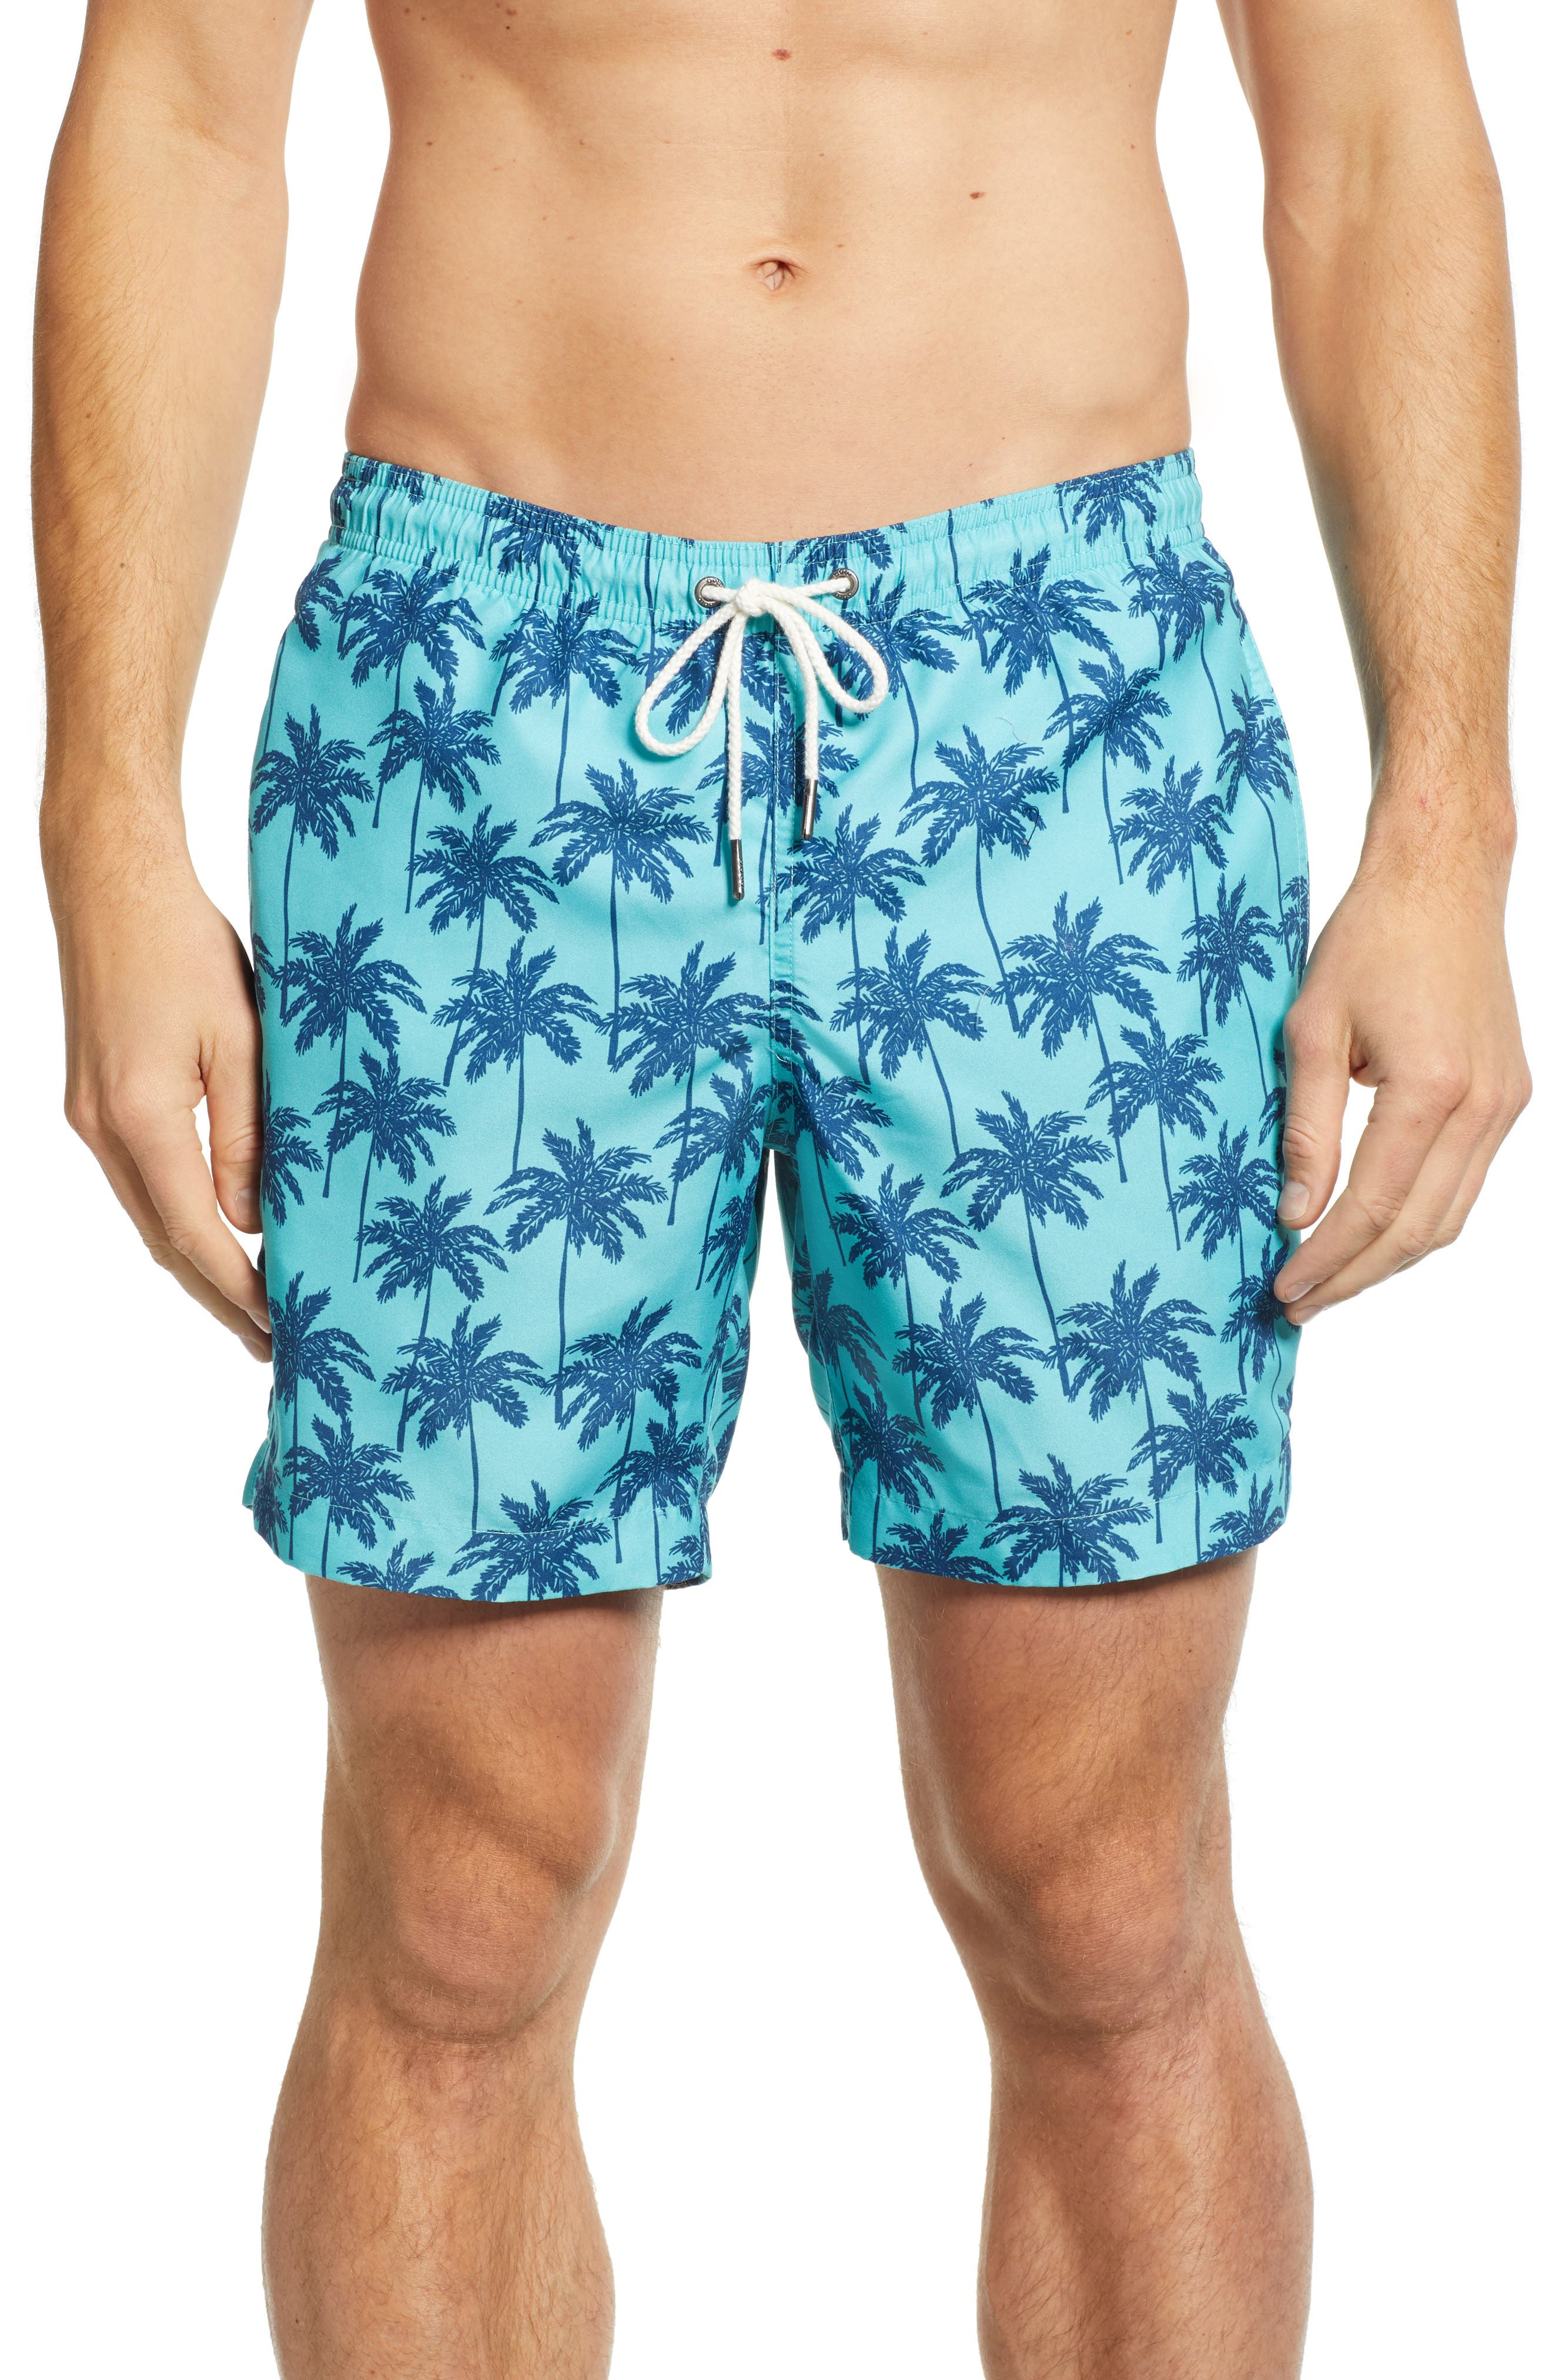 Cabo Palm Trees 6.5 Inch Swim Trunks,                             Main thumbnail 1, color,                             443